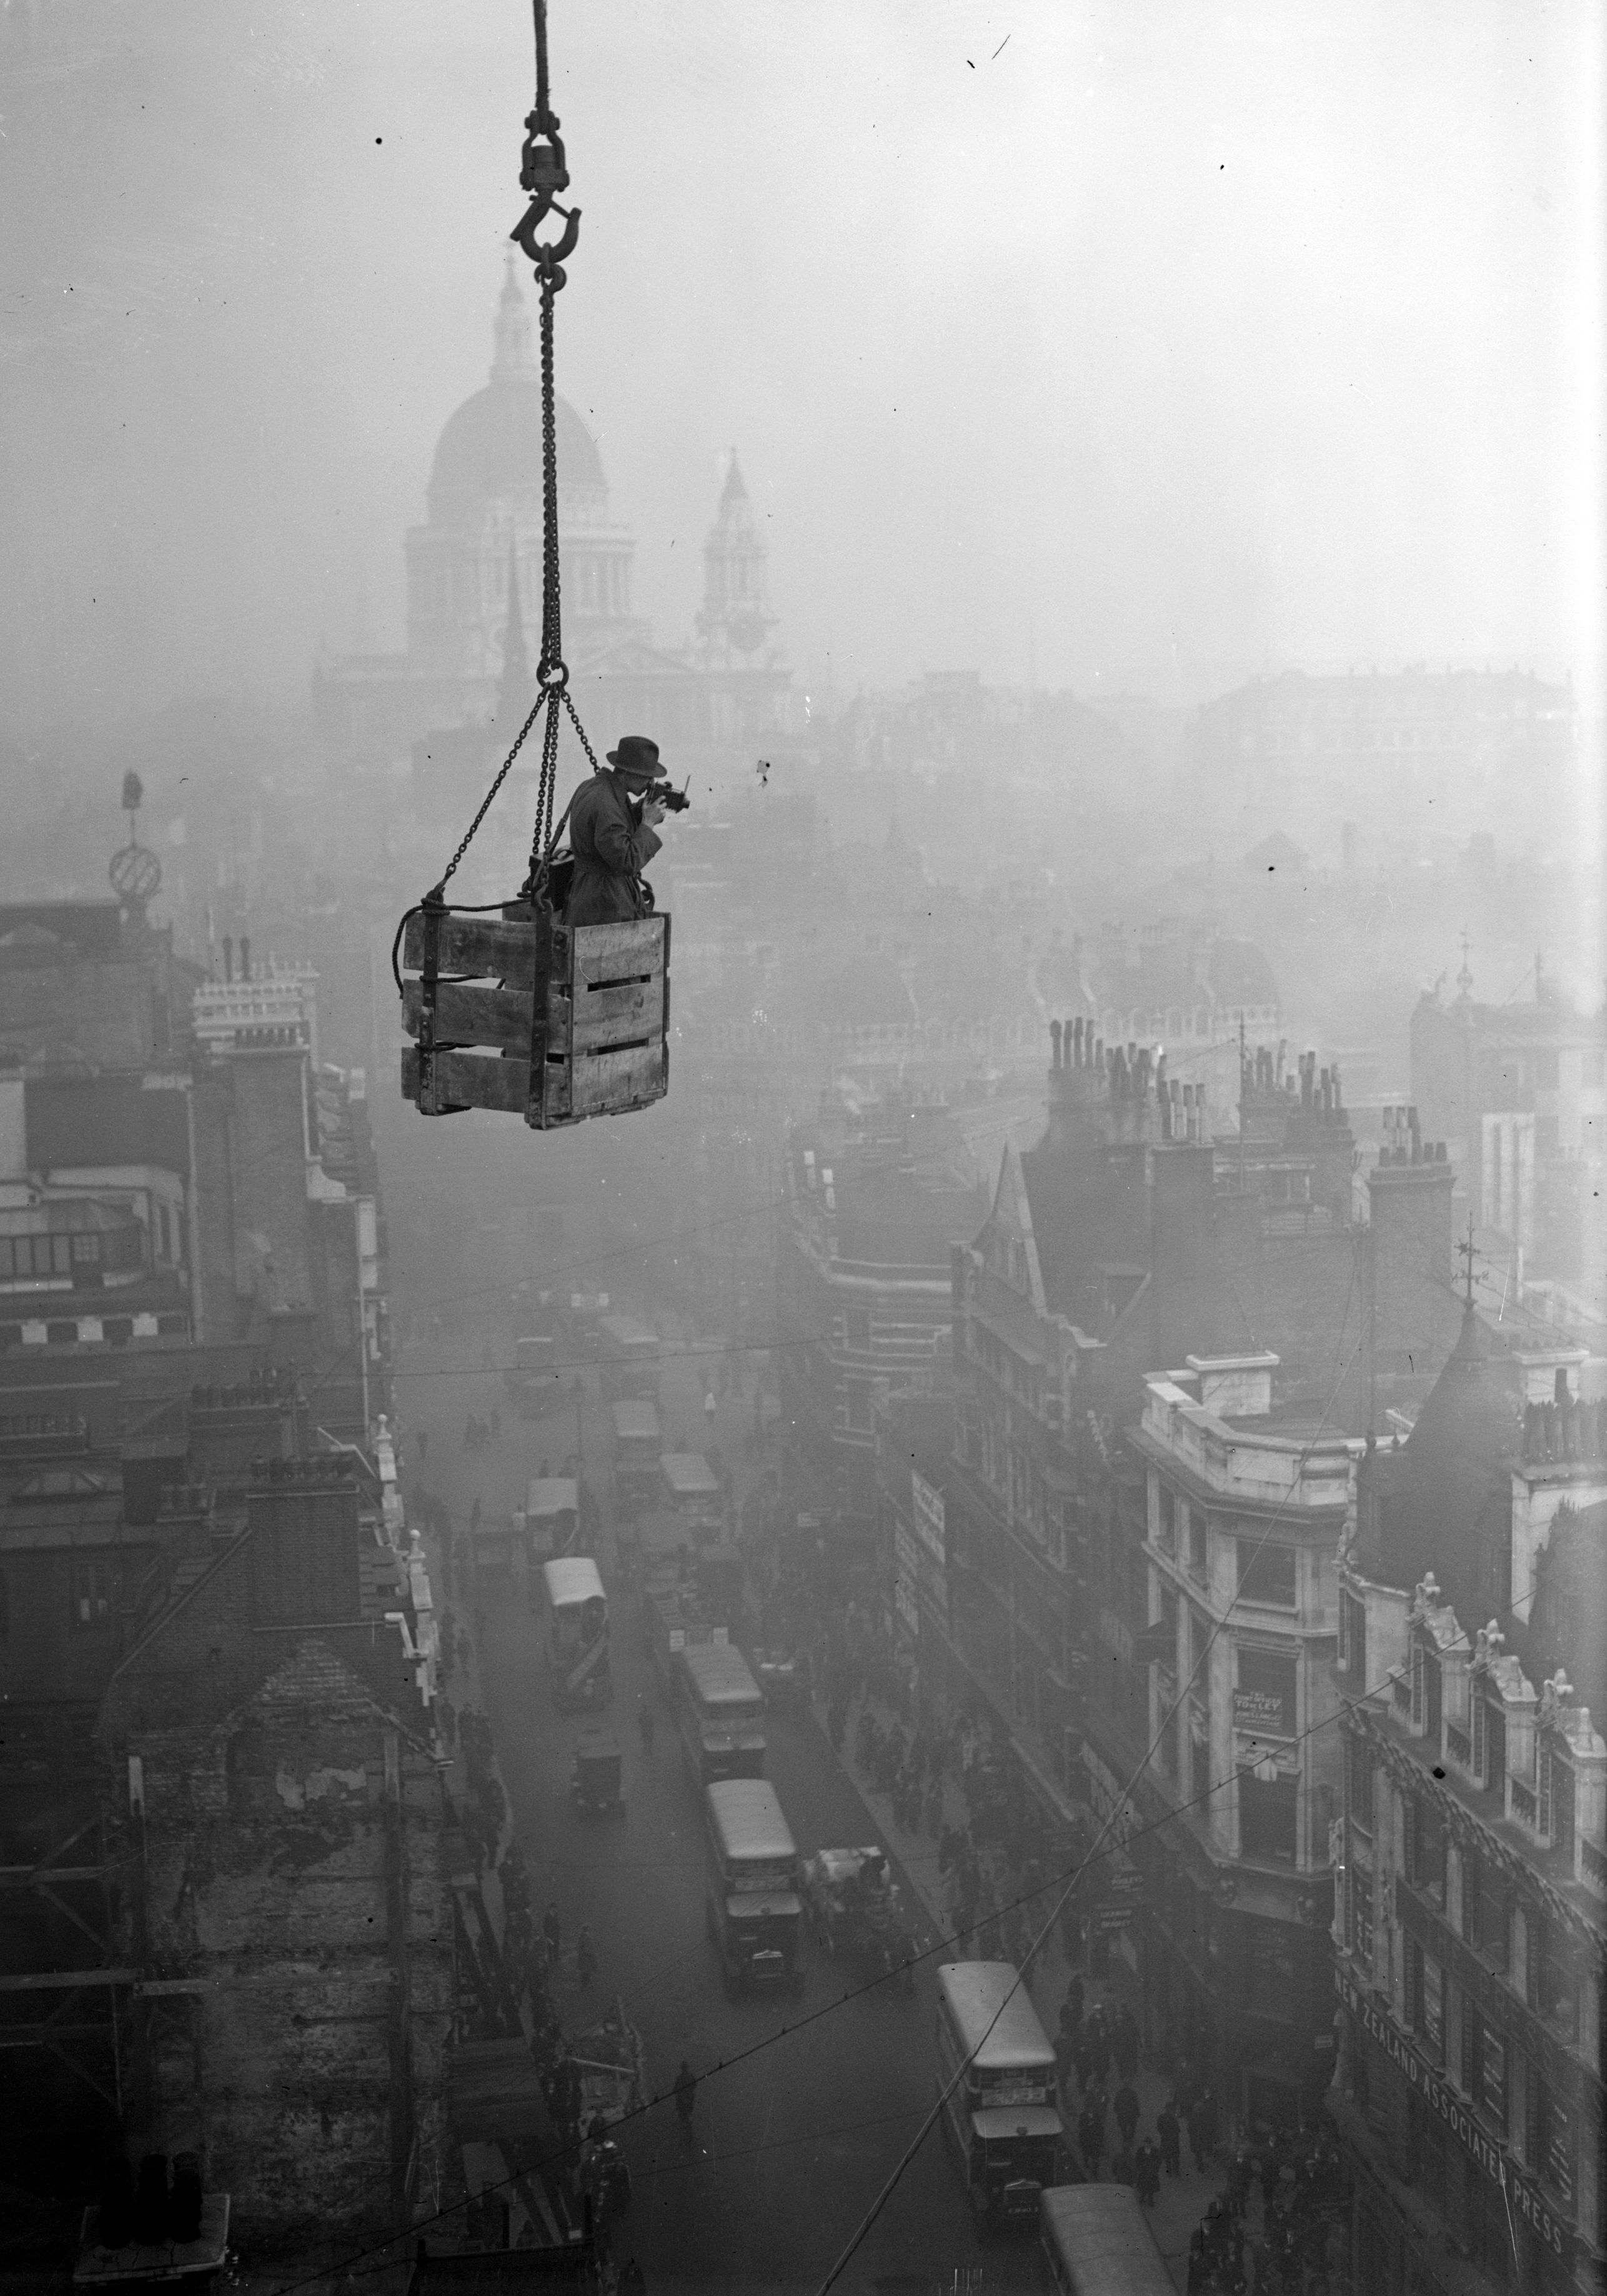 December 1929. A photographer dangles over Fleet Street, with St Paul's in the background.